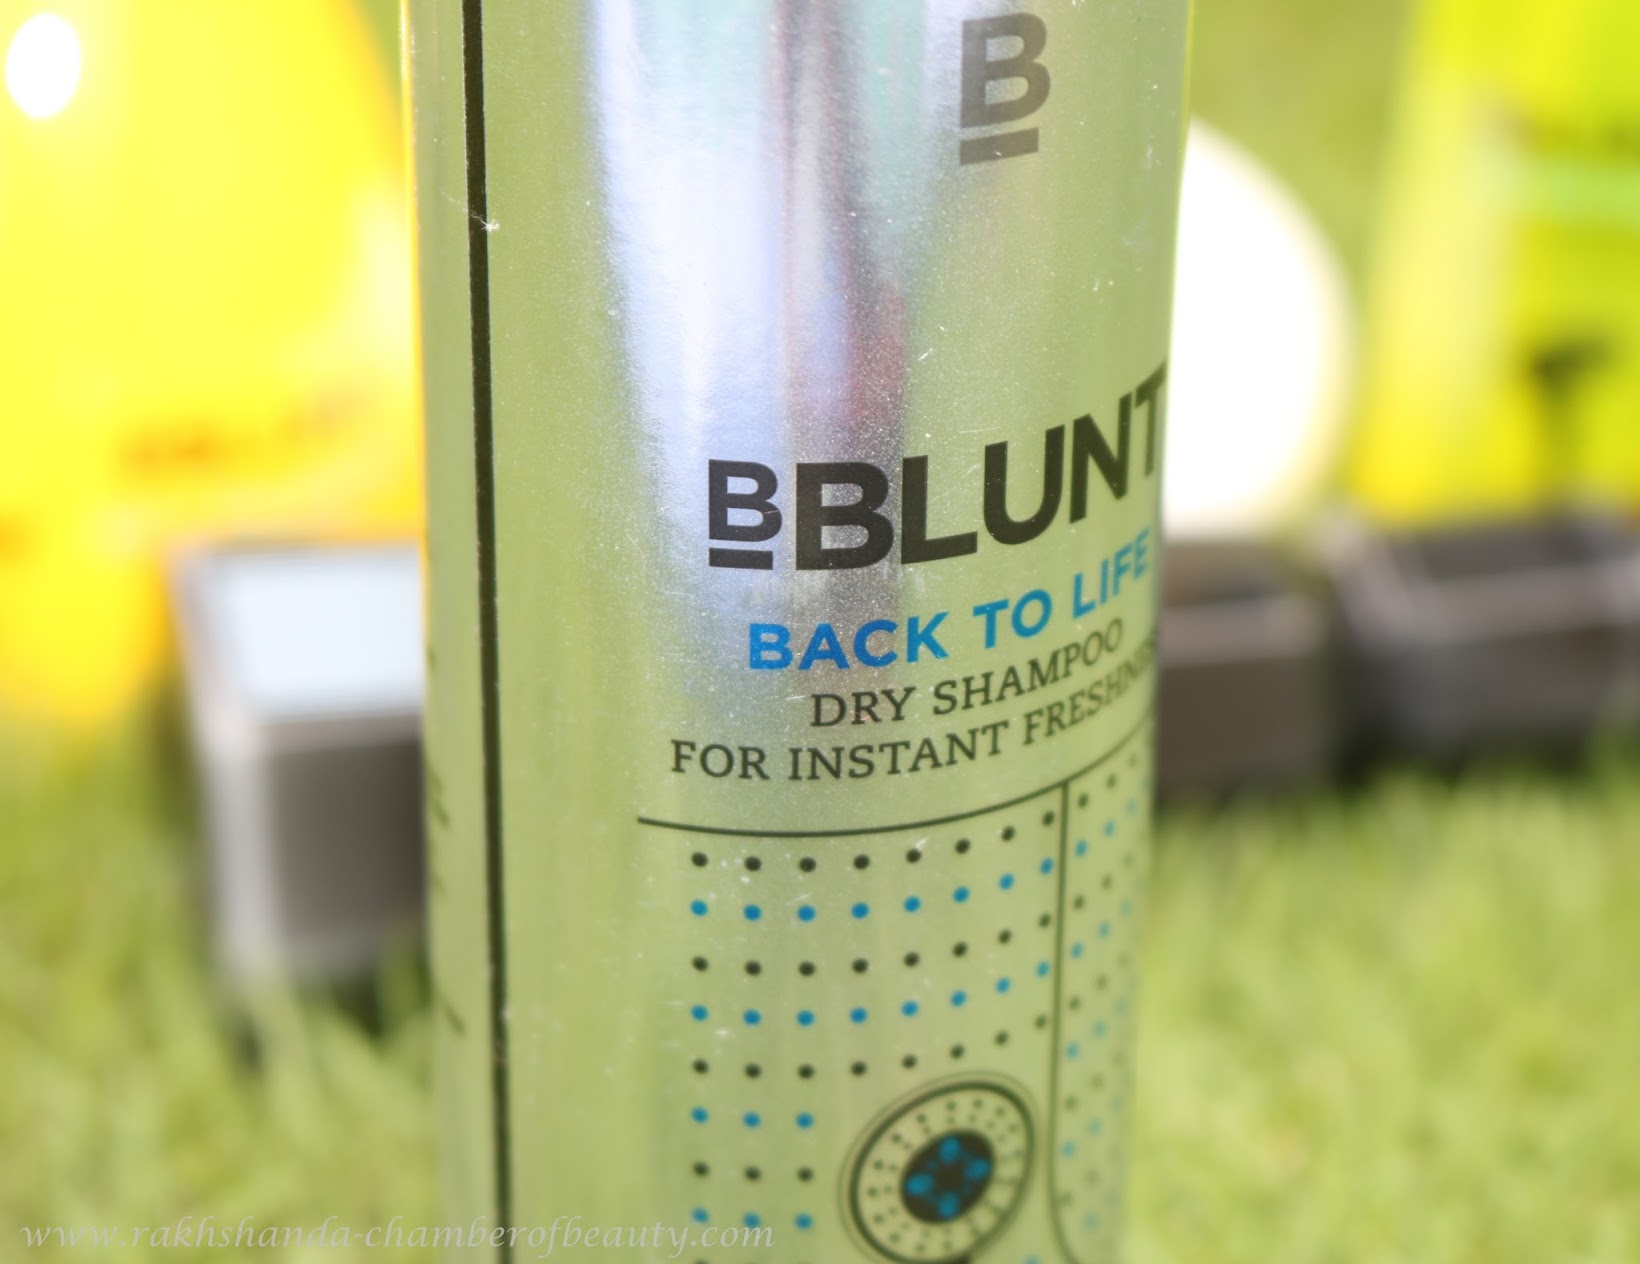 BBLUNT HAIR PRODUCTS (First Impression), BBlunt dry shampoo, BBlunt perfect balance conditioner, BBlunt Climate control cream, BBlunt Volumizing hair spray, BBlunt Full on Volume Shampoo, Indian beauty blogger, Chamber of Beauty